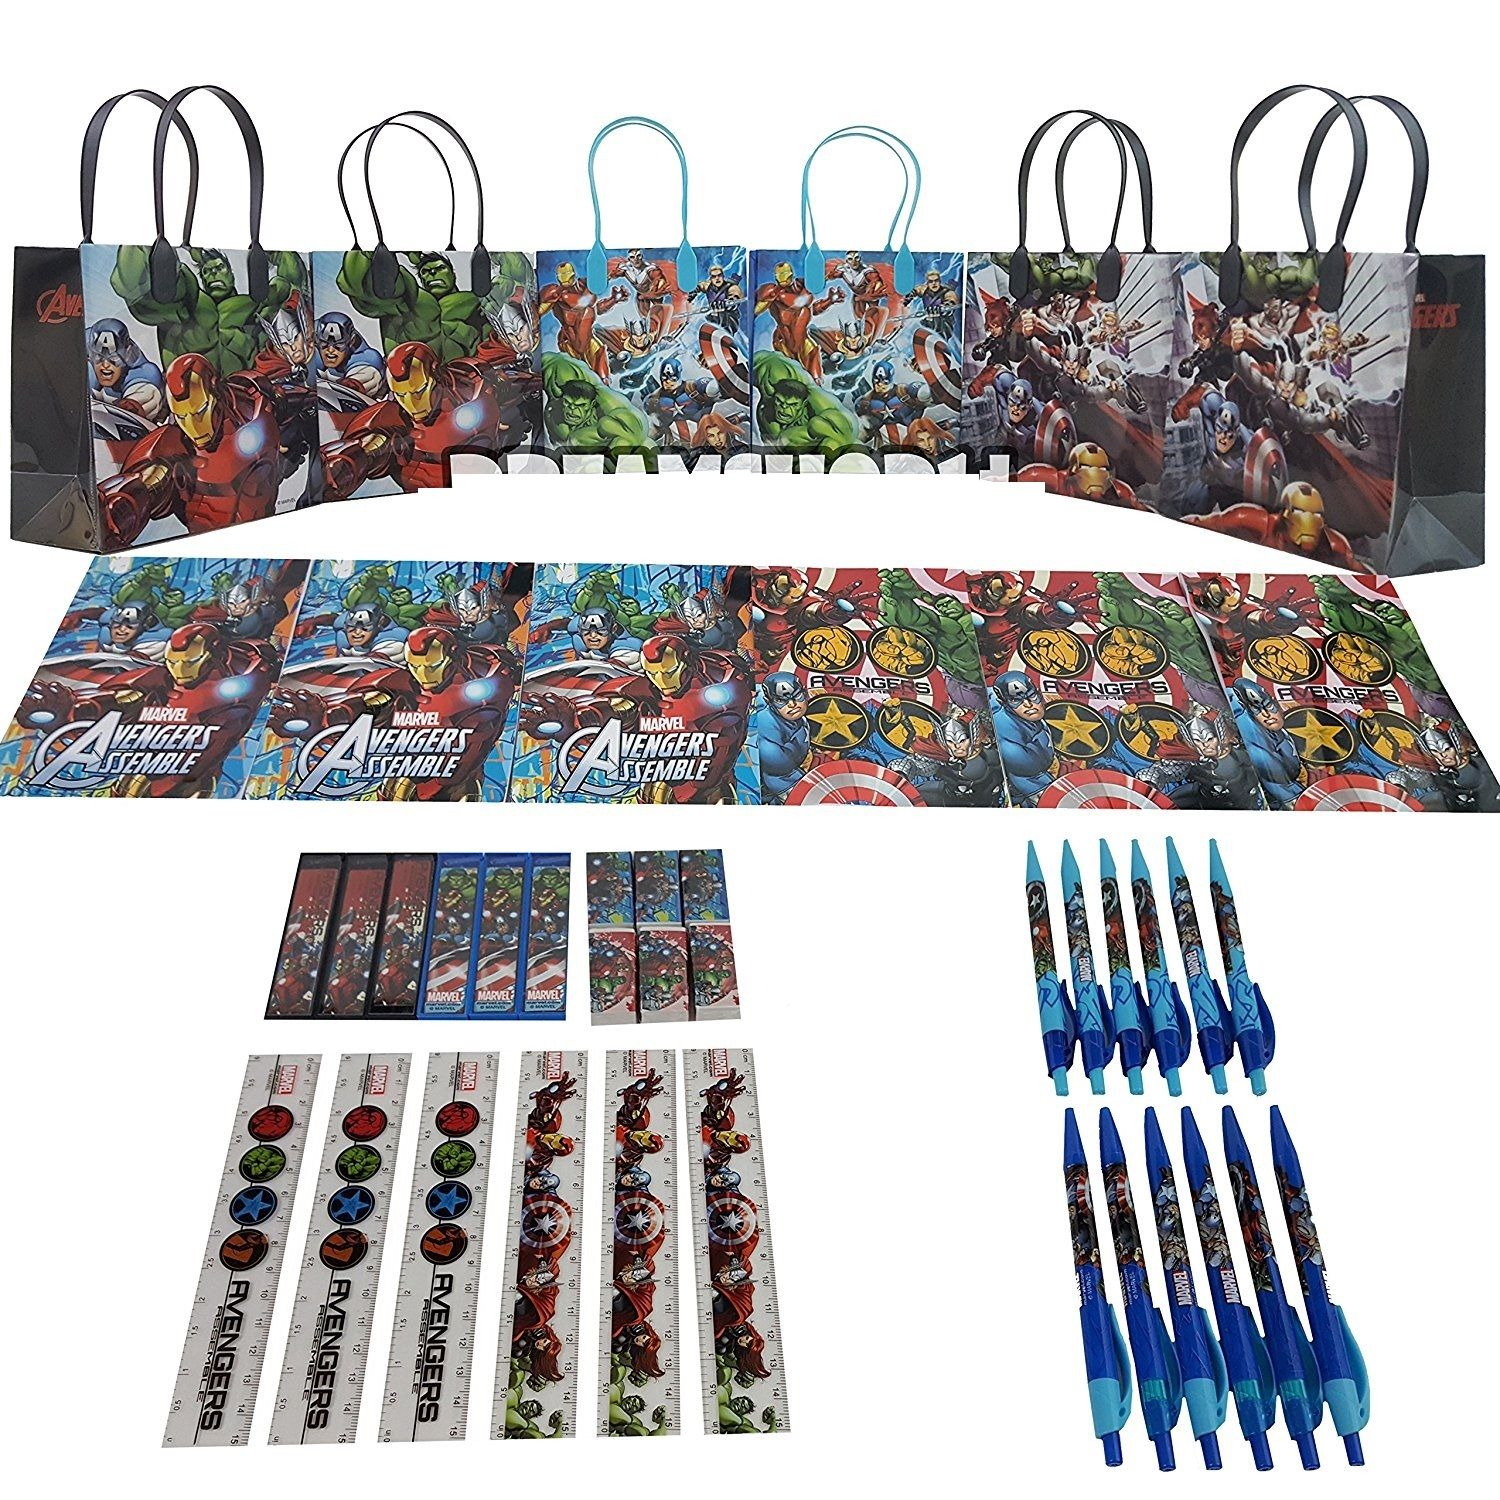 Party Favors Avengers Gift Goody Bag Stationery Party Favor Set 42Pc. (6 Sets)